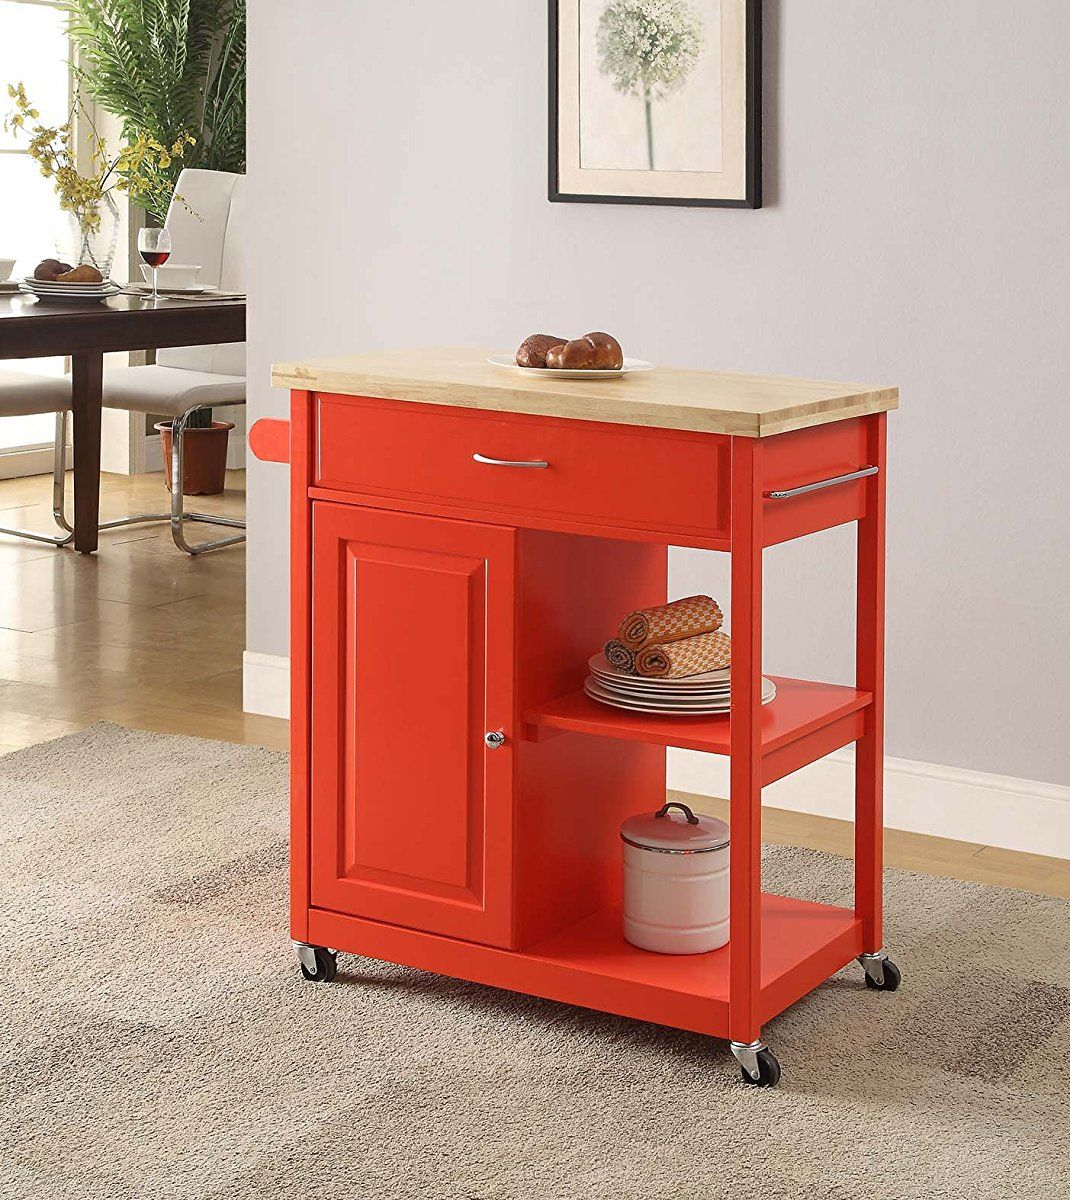 Genial Mobile Kitchen Island Cart On Wheels   Red